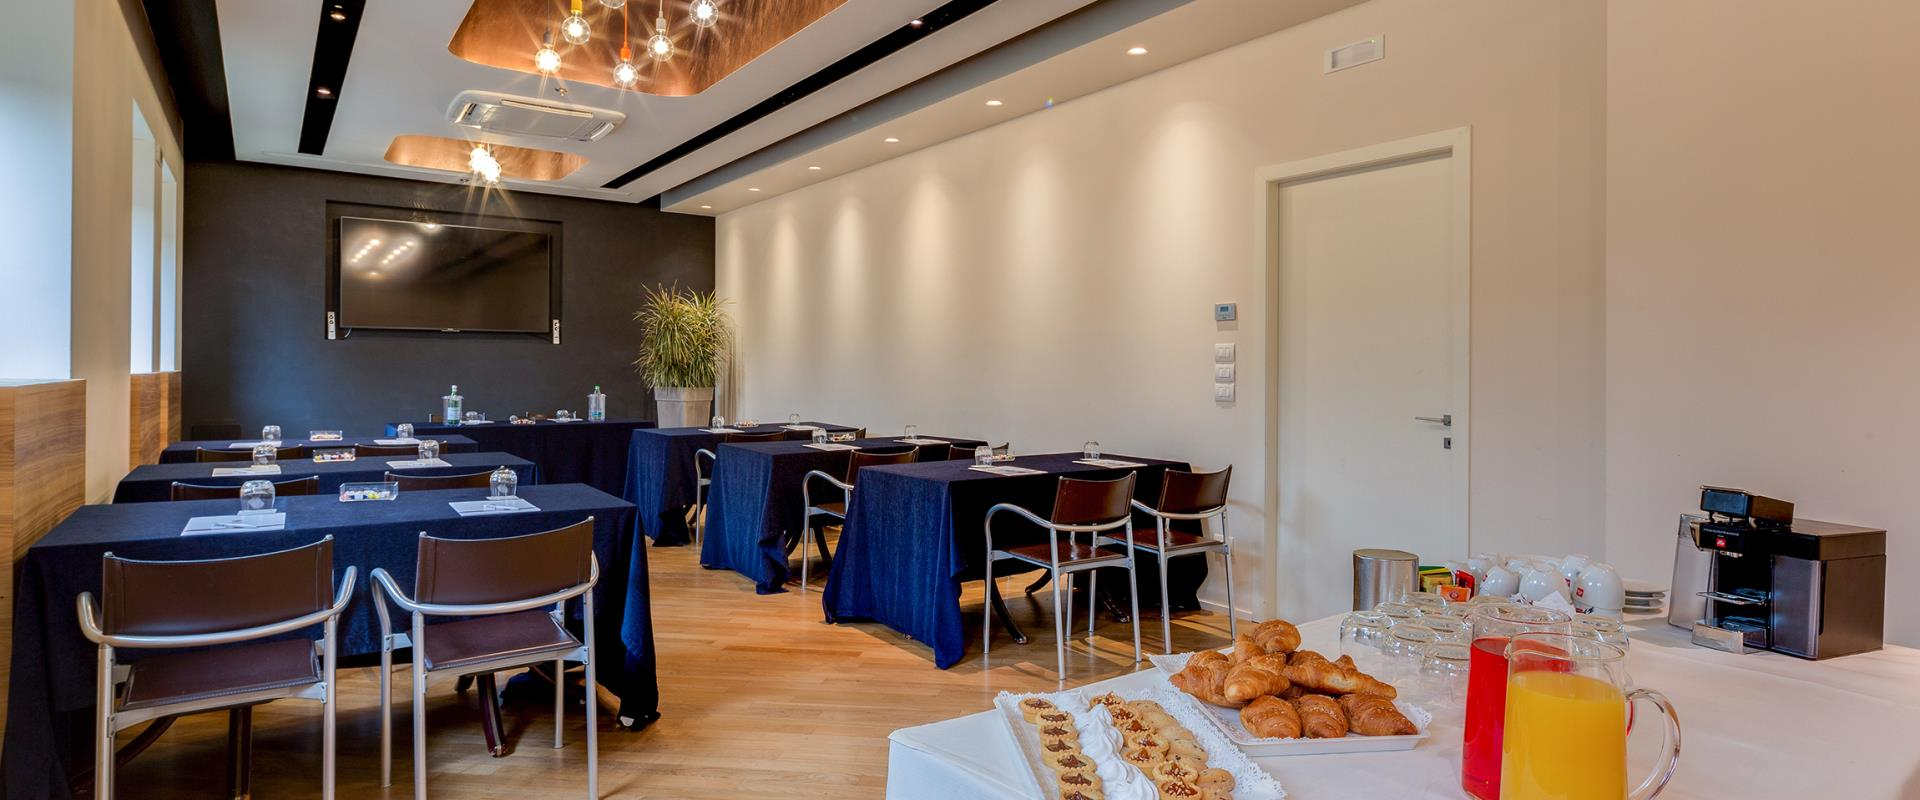 Plan your meeting near Venice with BW Plus Hotel Bologna!